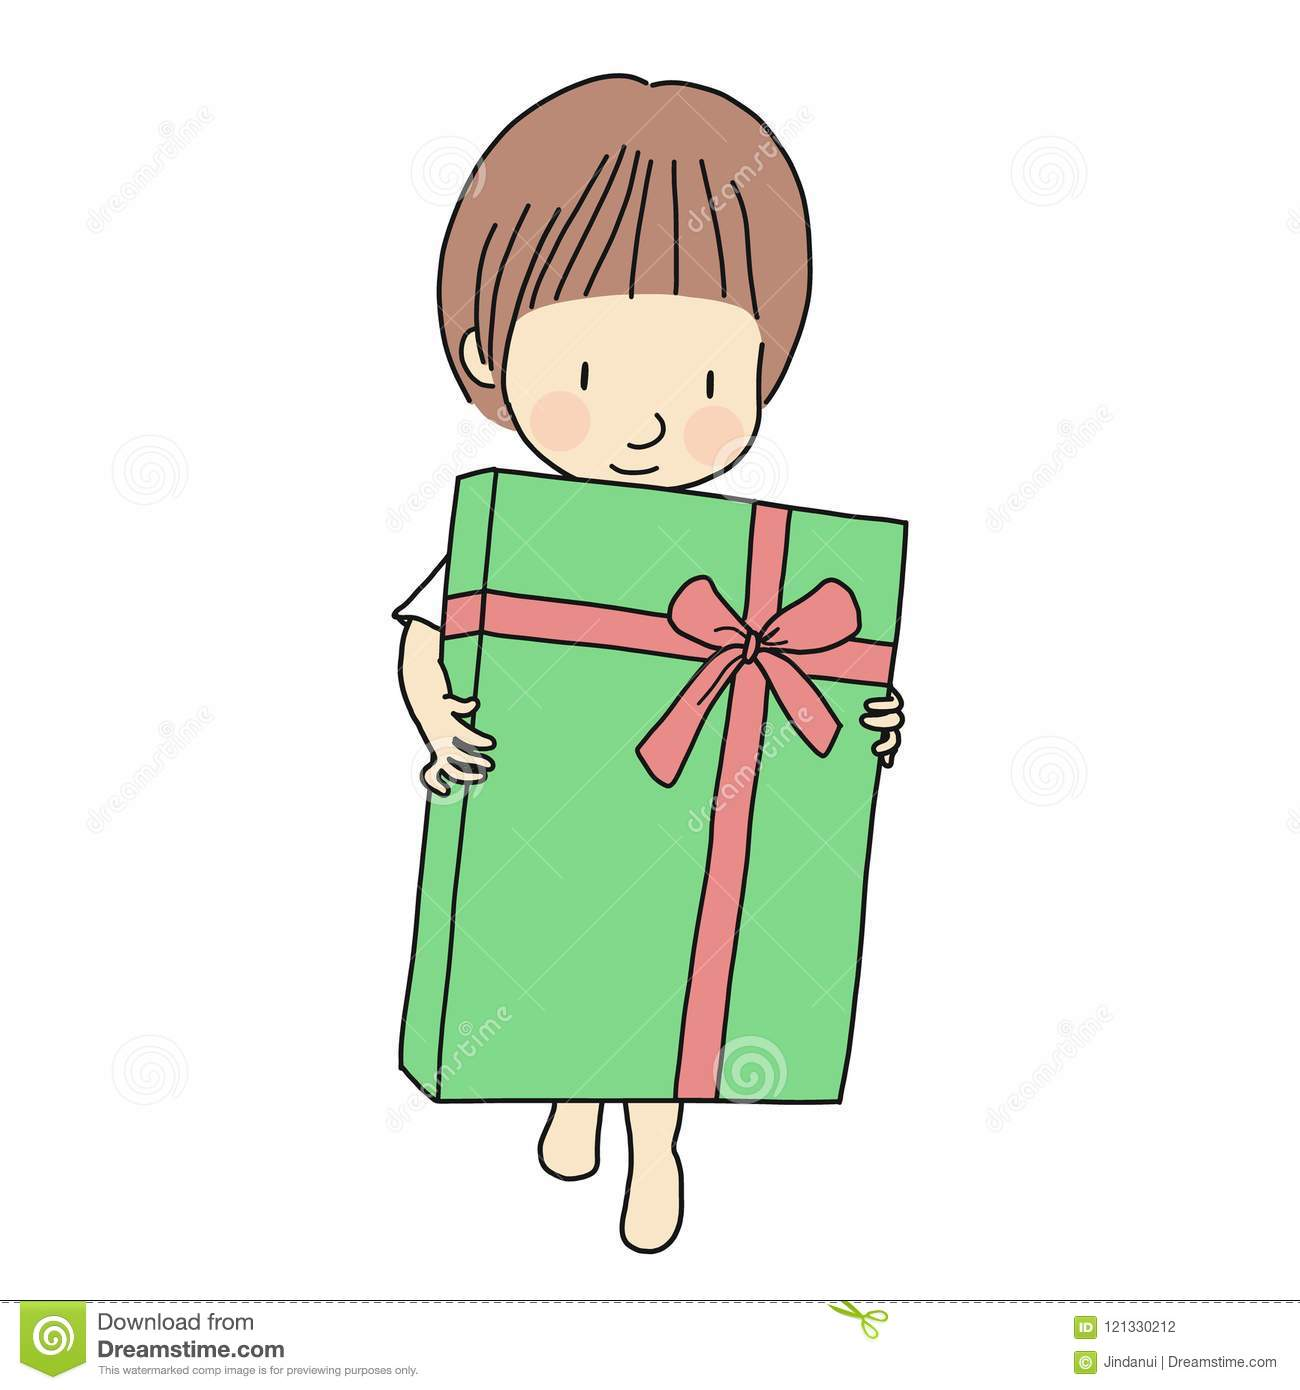 Download Vector Illustration Of Little Kid Holding Big Gift Box With Ribbon Family Concept